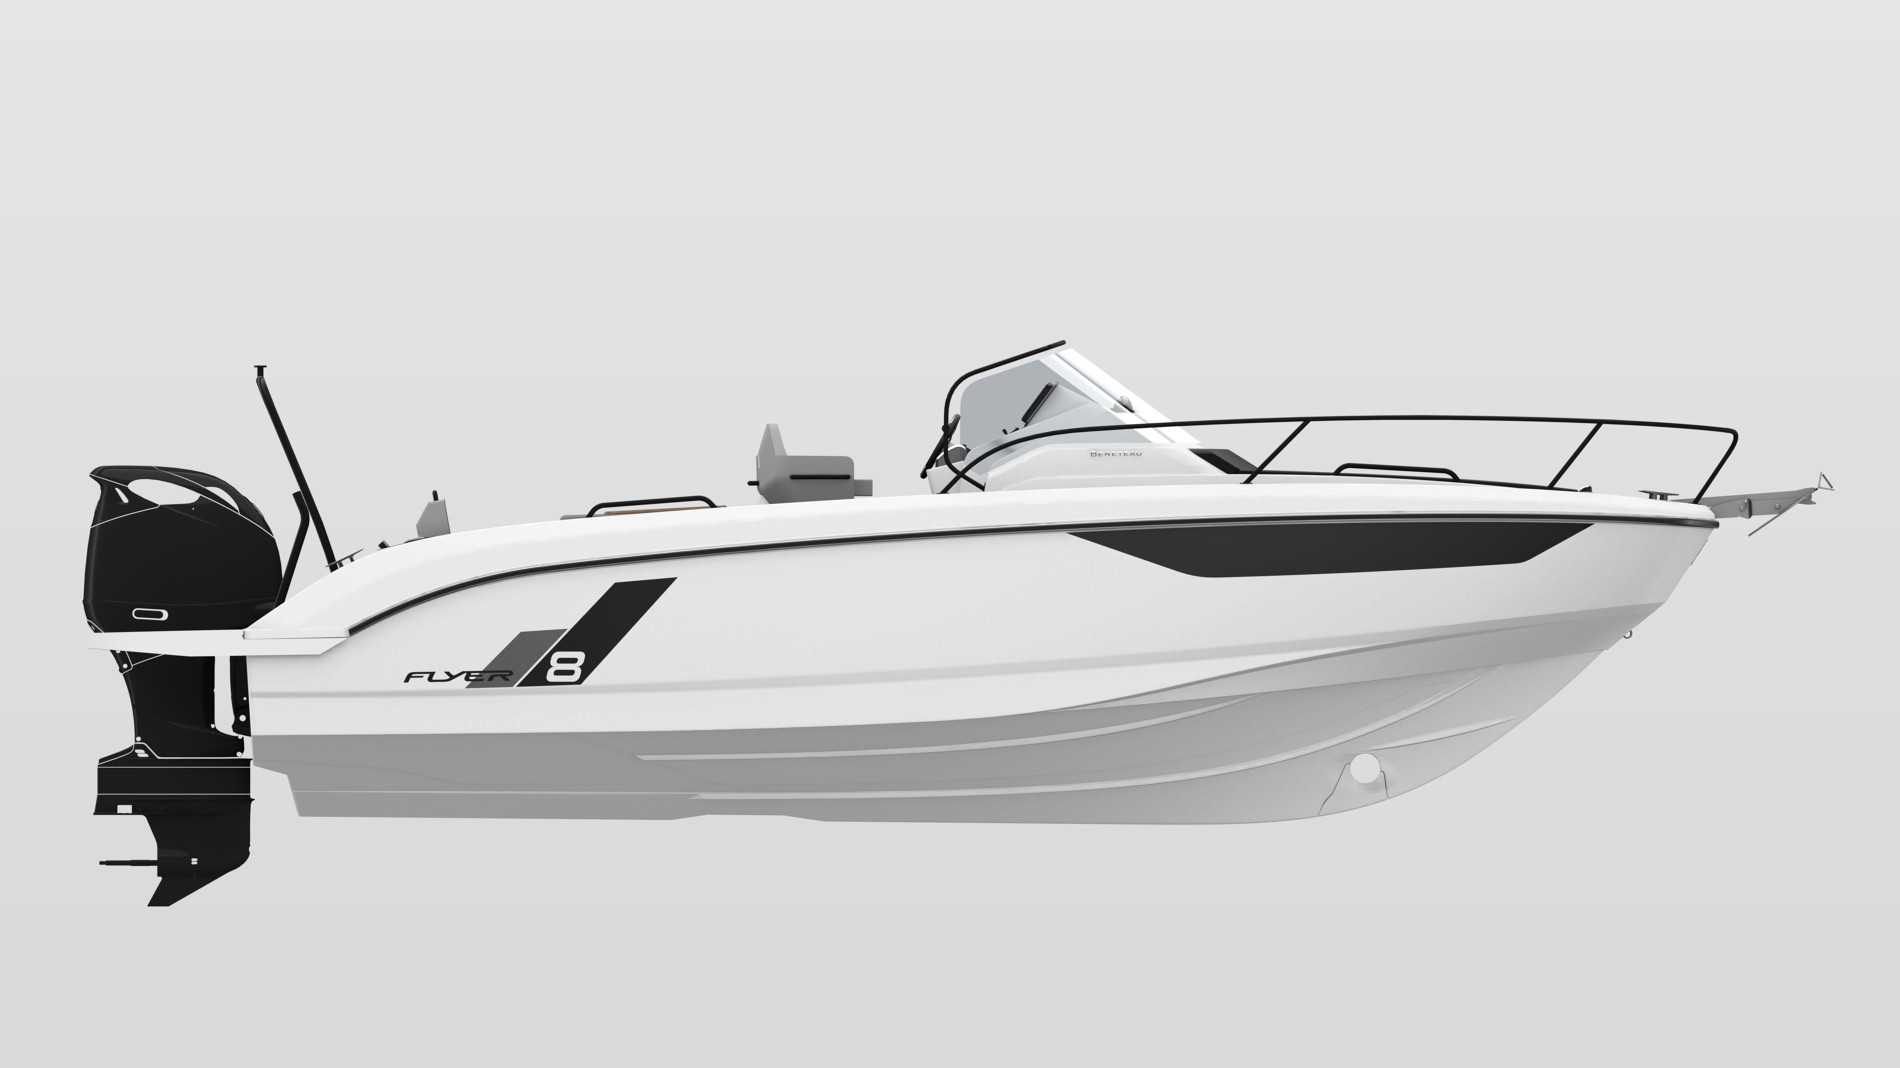 Beneteau F8 Drawing (1)